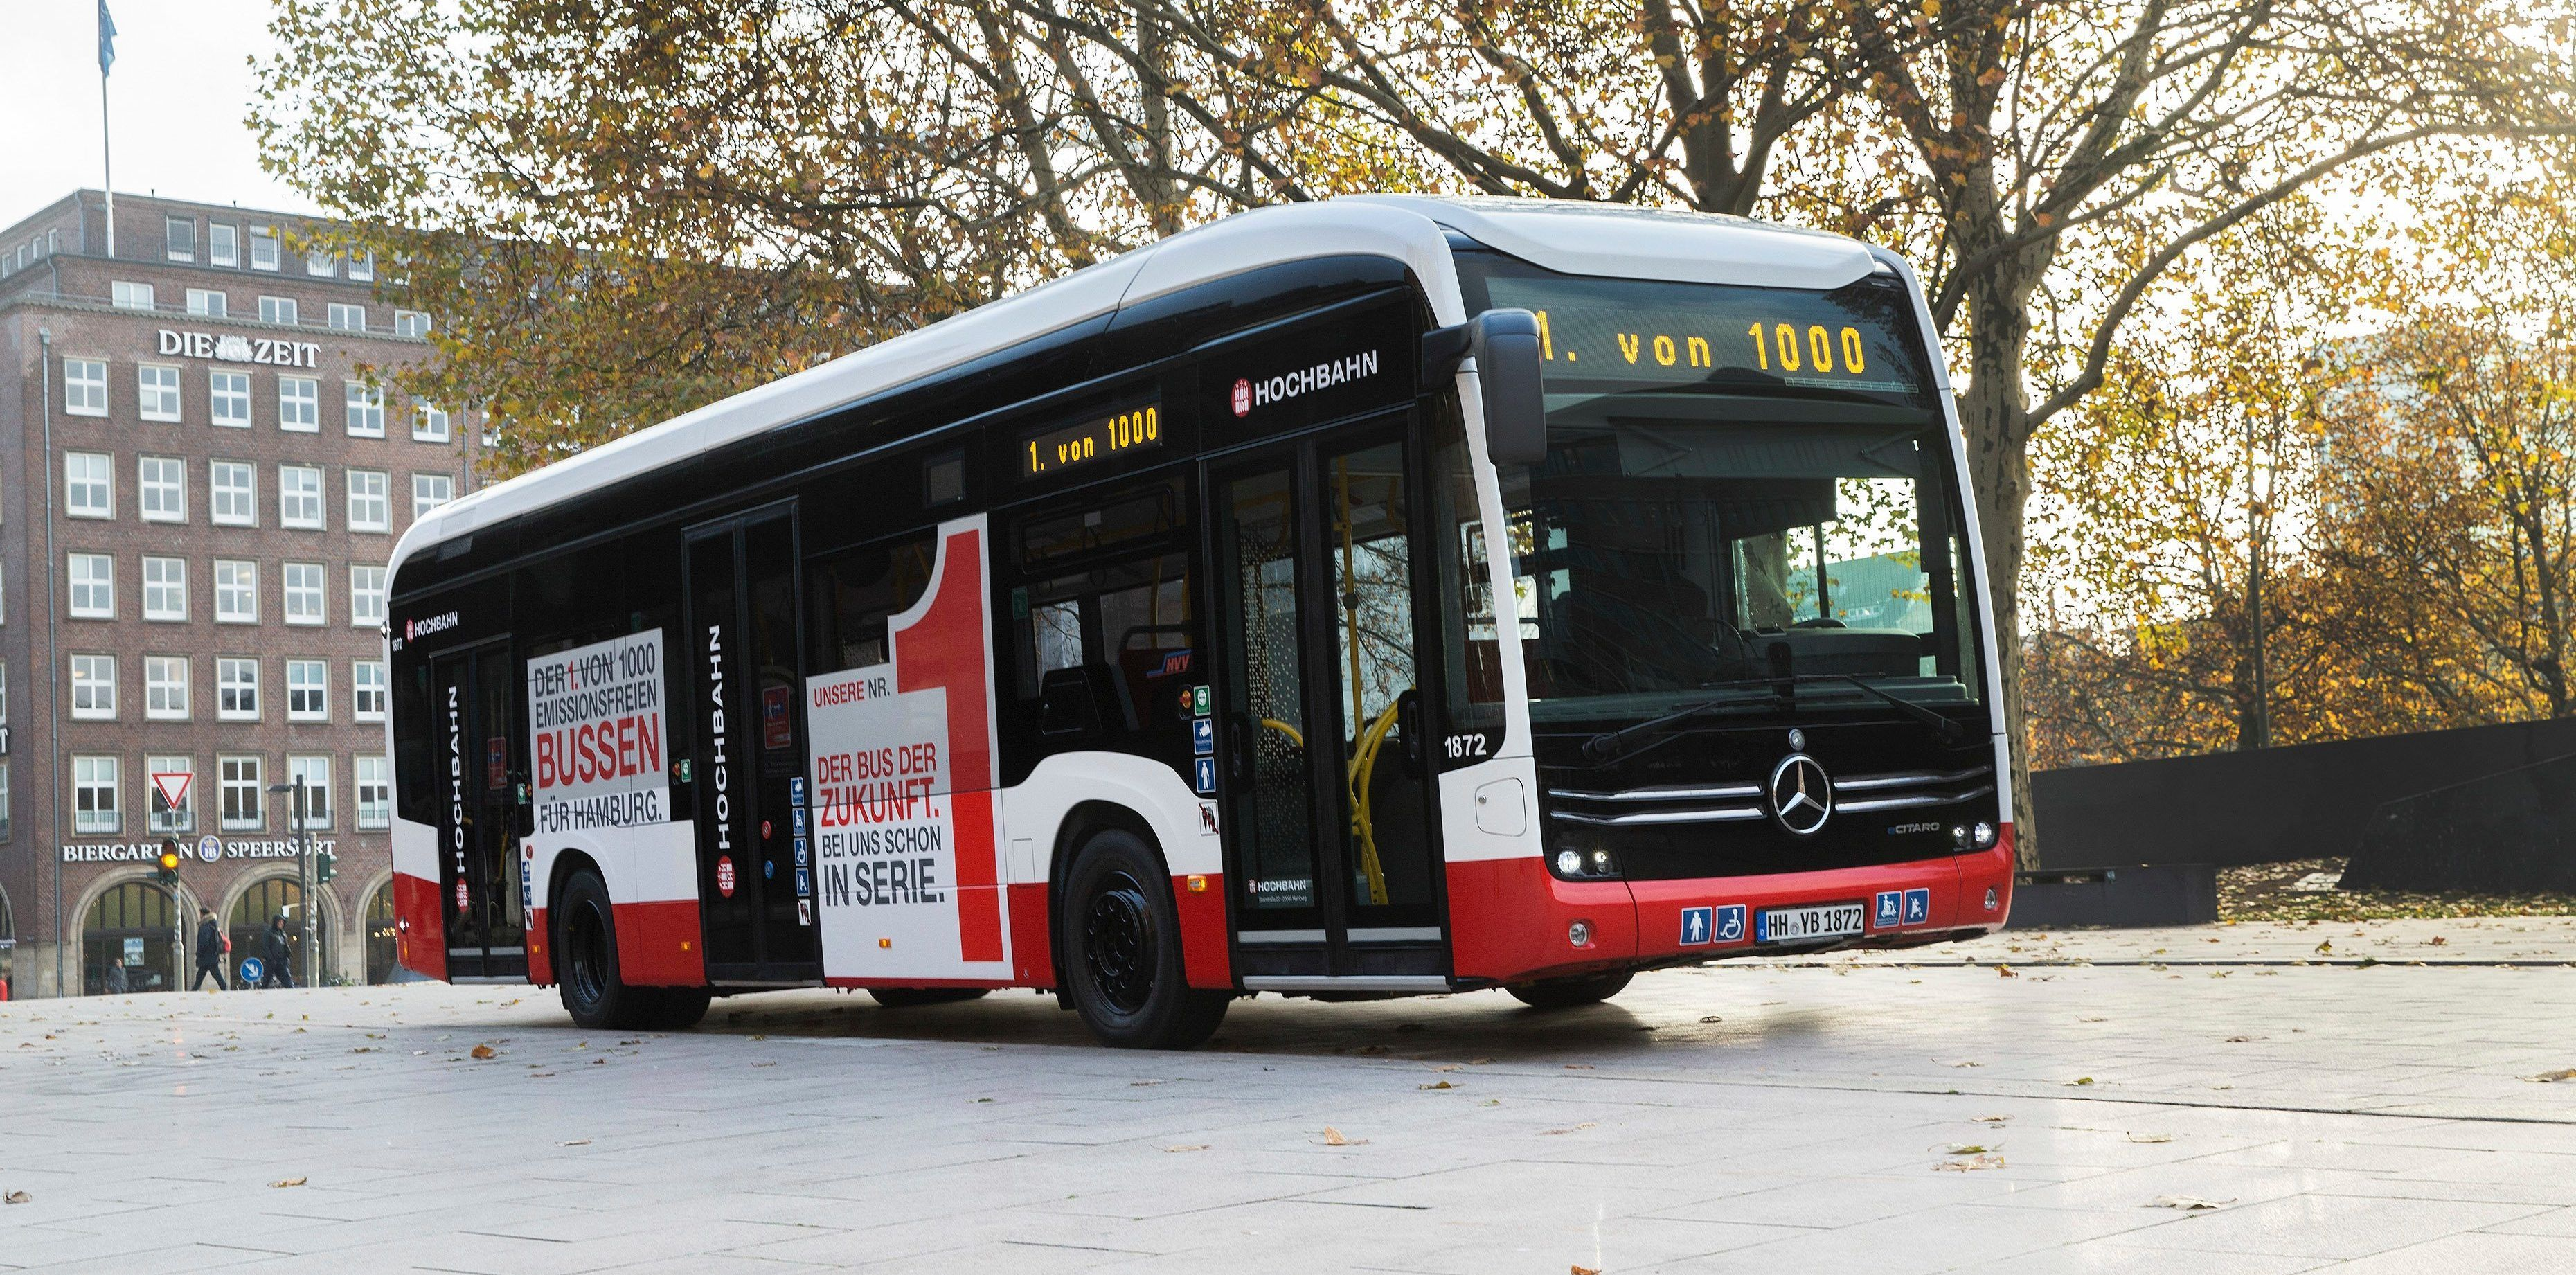 Mercedes‑Benz delivers its first eCitaro electric bus | RENEWABLE